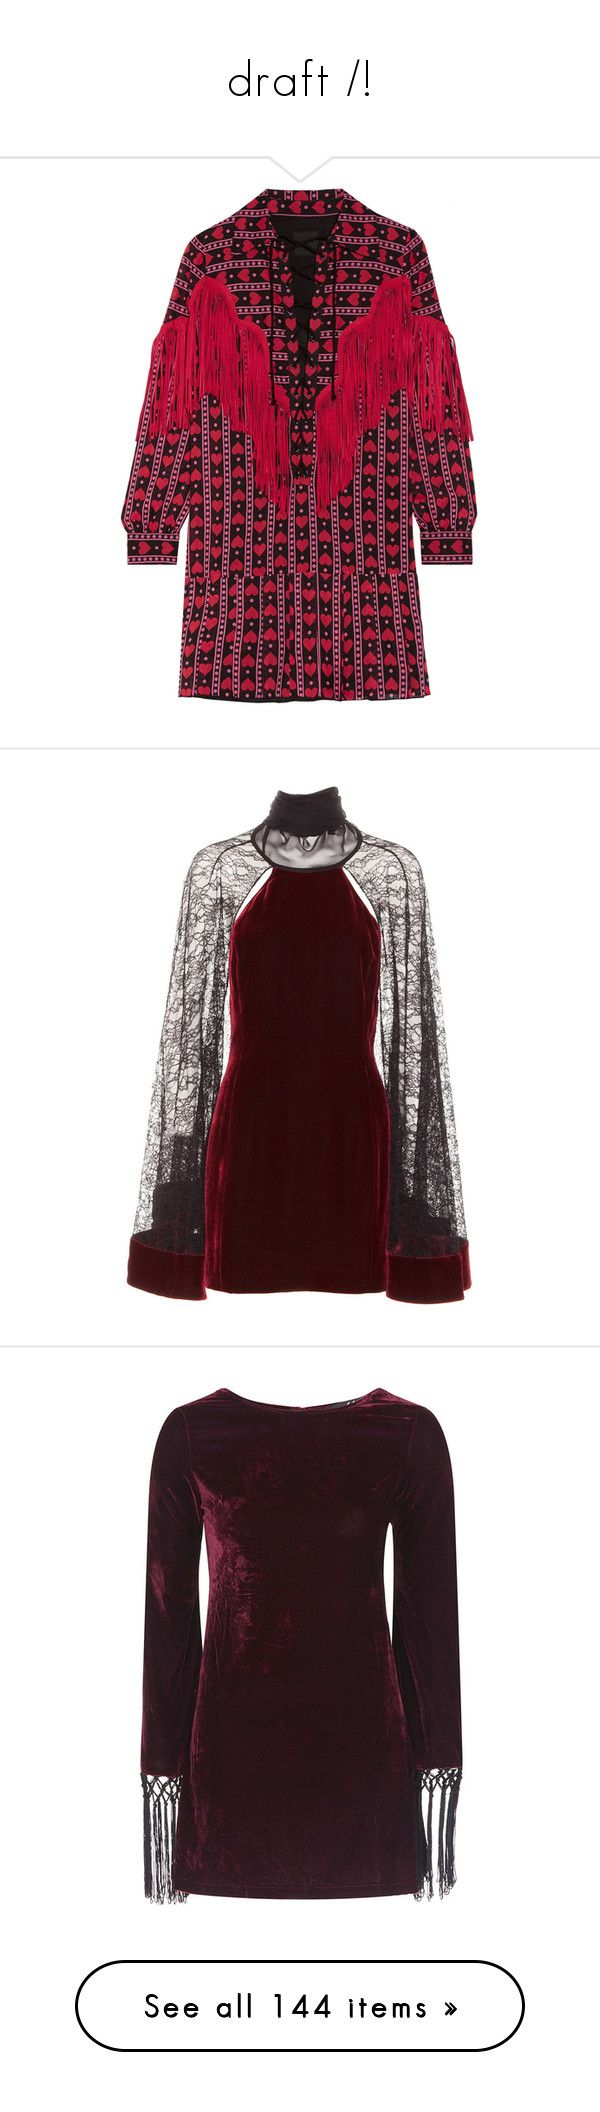 """draft /!\"" by xxeucliffexx ❤ liked on Polyvore featuring dresses, red, long red dress, fringed dresses, short long dresses, polka dot dresses, slip dresses, short dresses, vestidos and women"